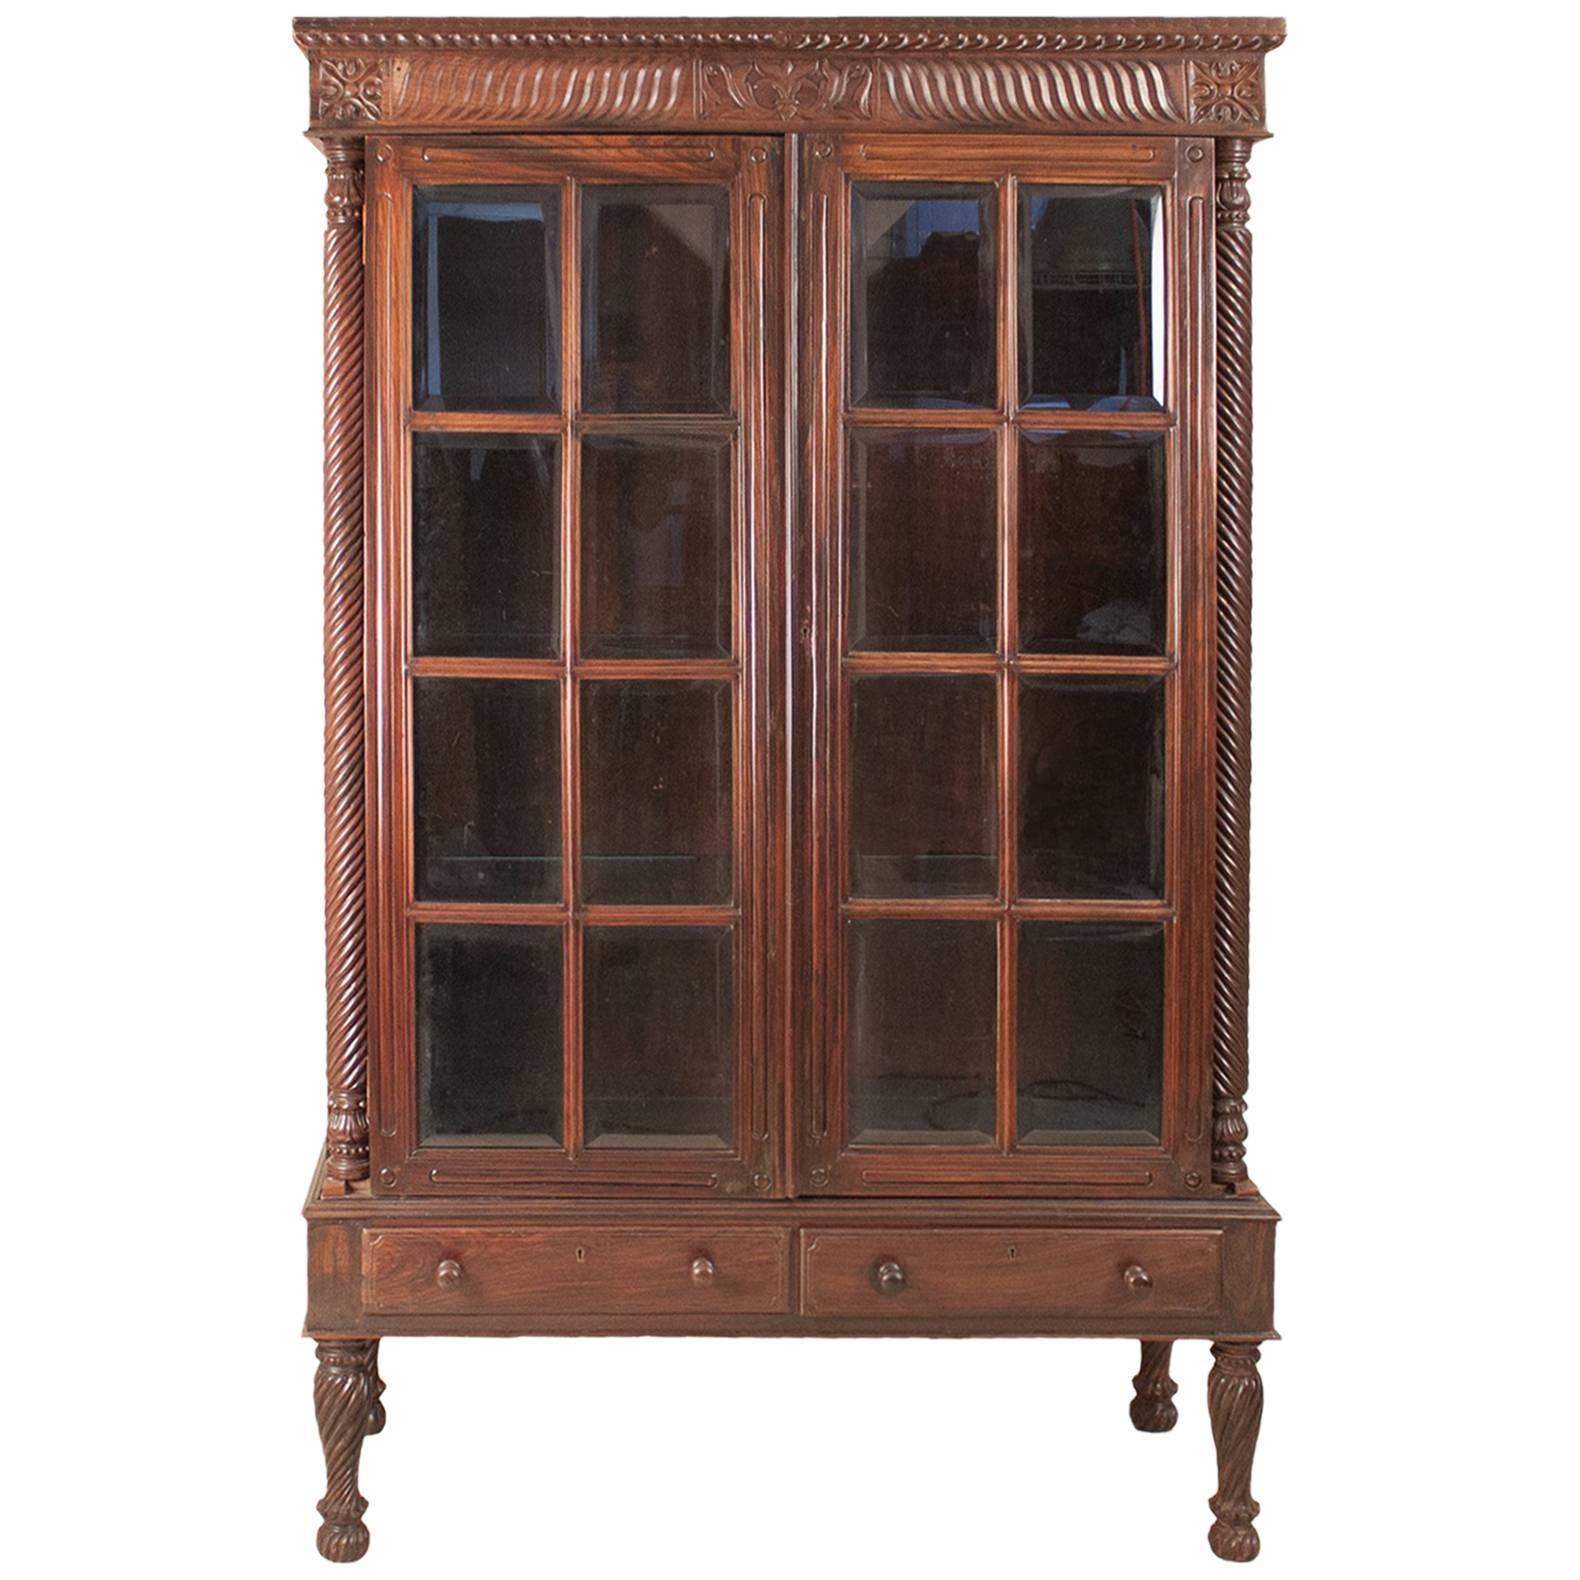 French 1900s Cherry Wood Two Part Cabinet With Inset Glass Doors And Drawers